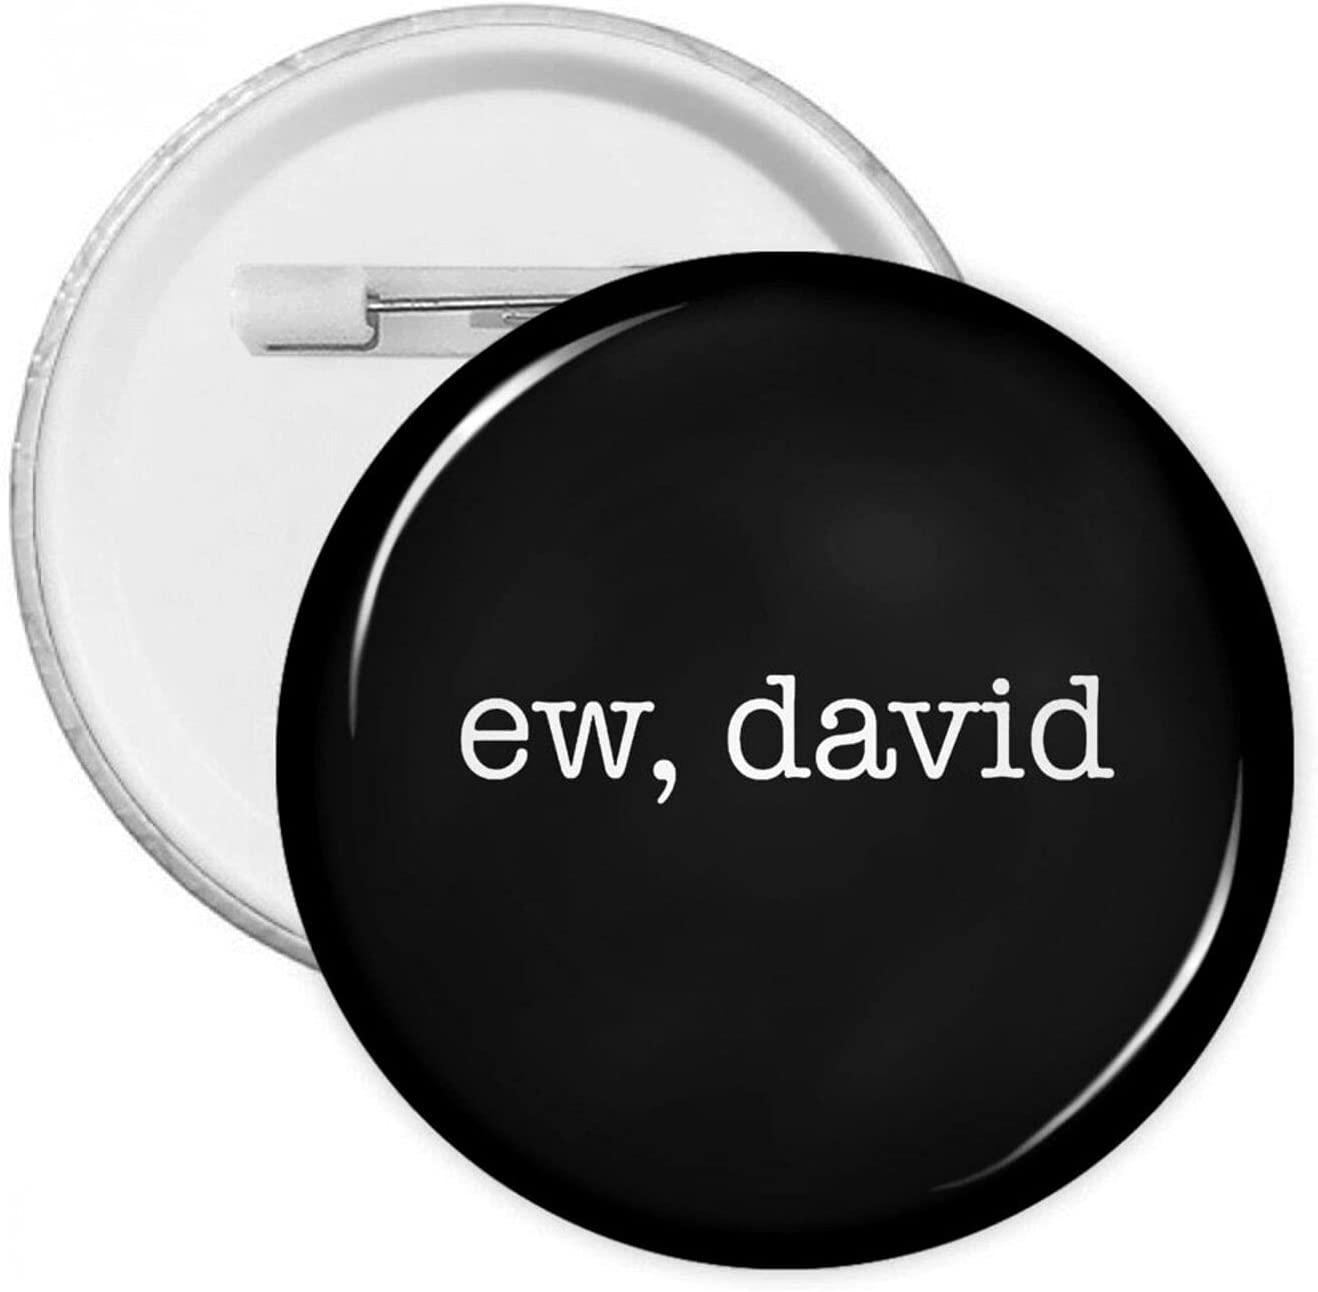 Ew David 1.2/1.8/2.3 Inch Round Pins Brooches Button Medal Tinplate Brooches Emblem Adult Children Pin Badges Decor for Backpacks Costume